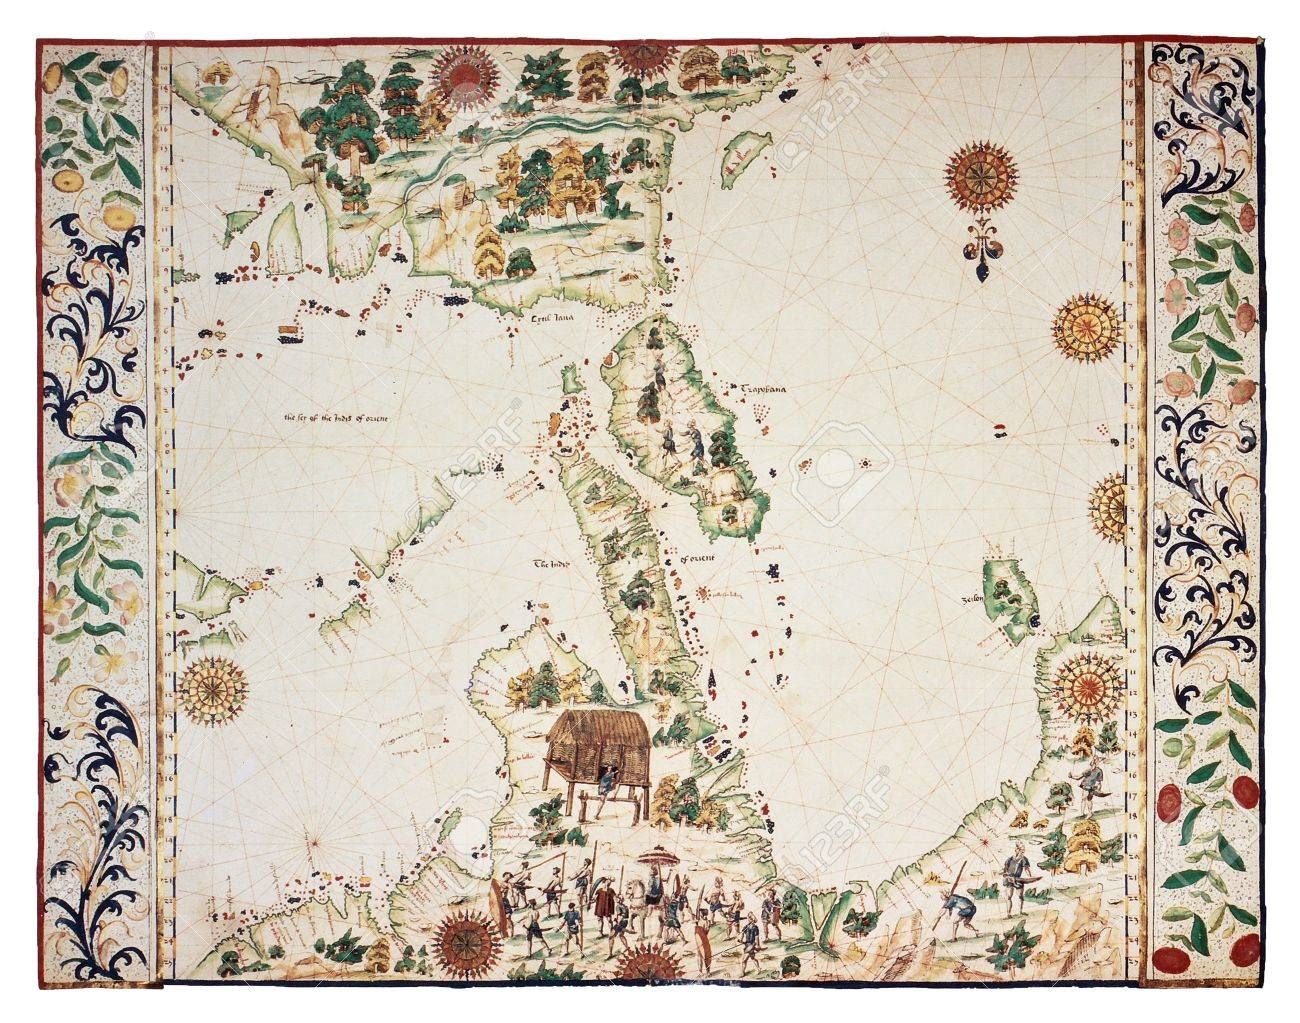 Map Of Southern And Eastern Asia.Old Map Based On South Eastern Asia Portolano By Jean Roth Stock